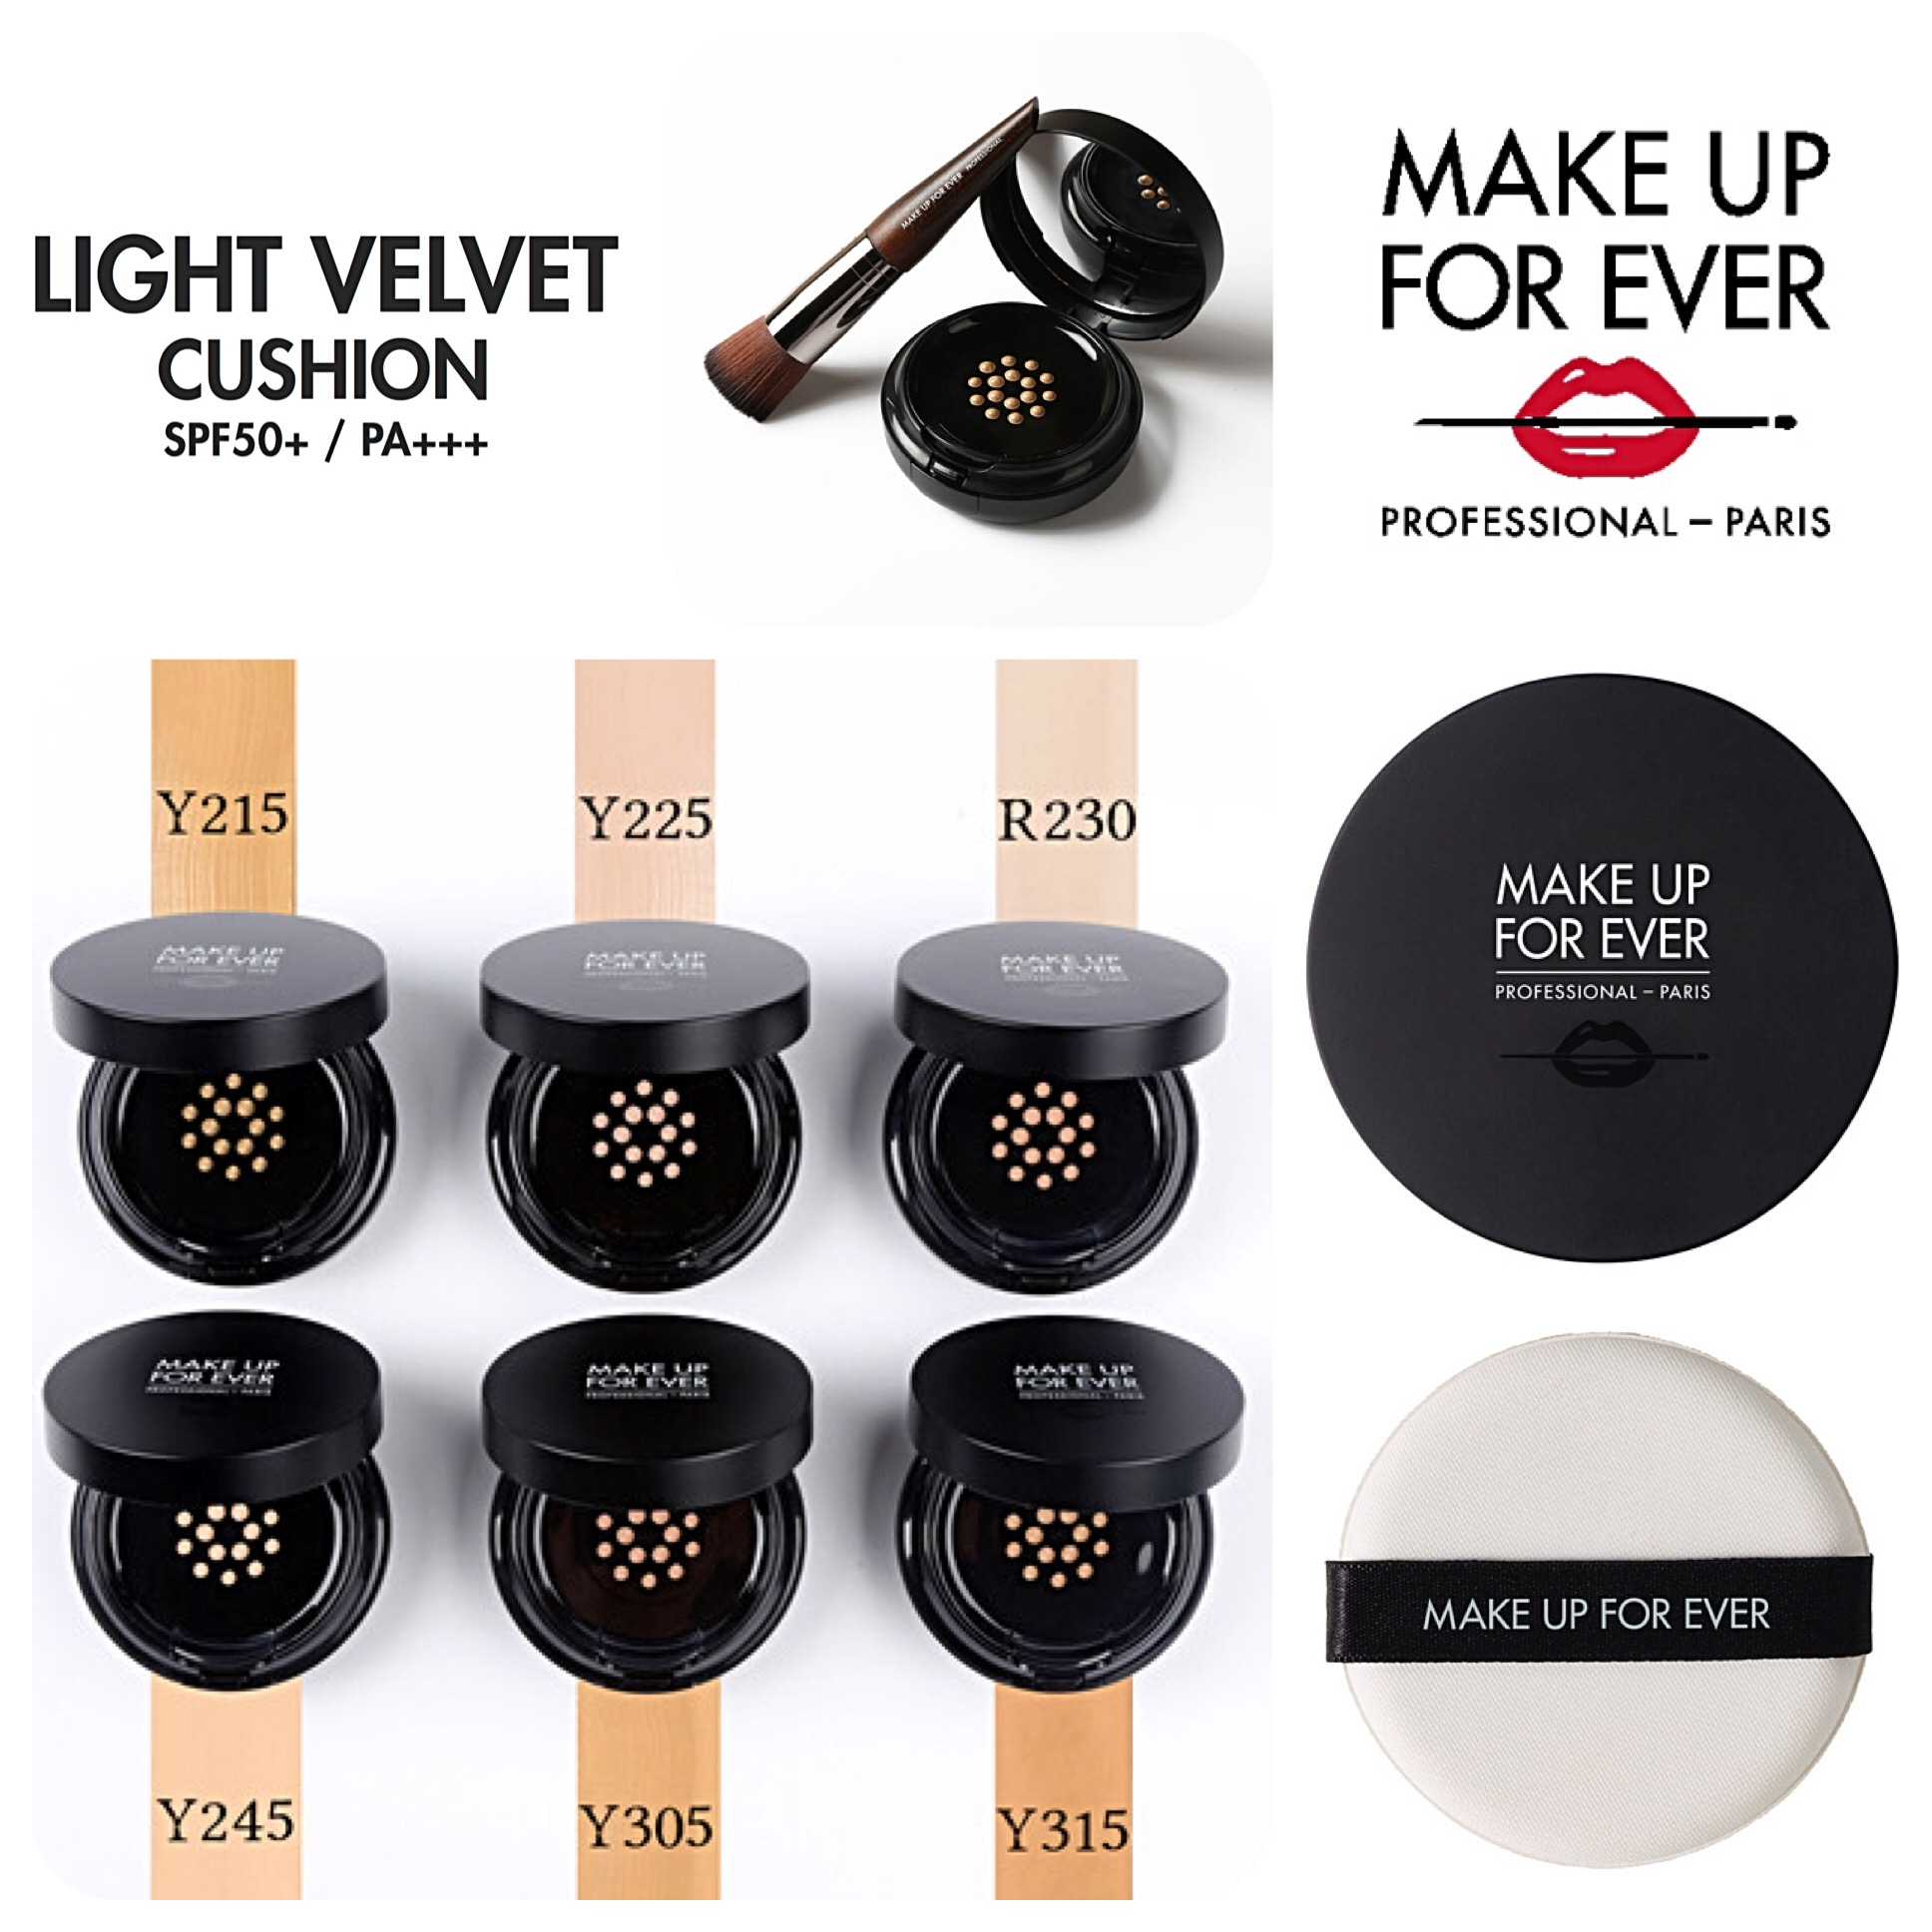 Make Up For Ever Light Velvet Cushion Spf50 Pa